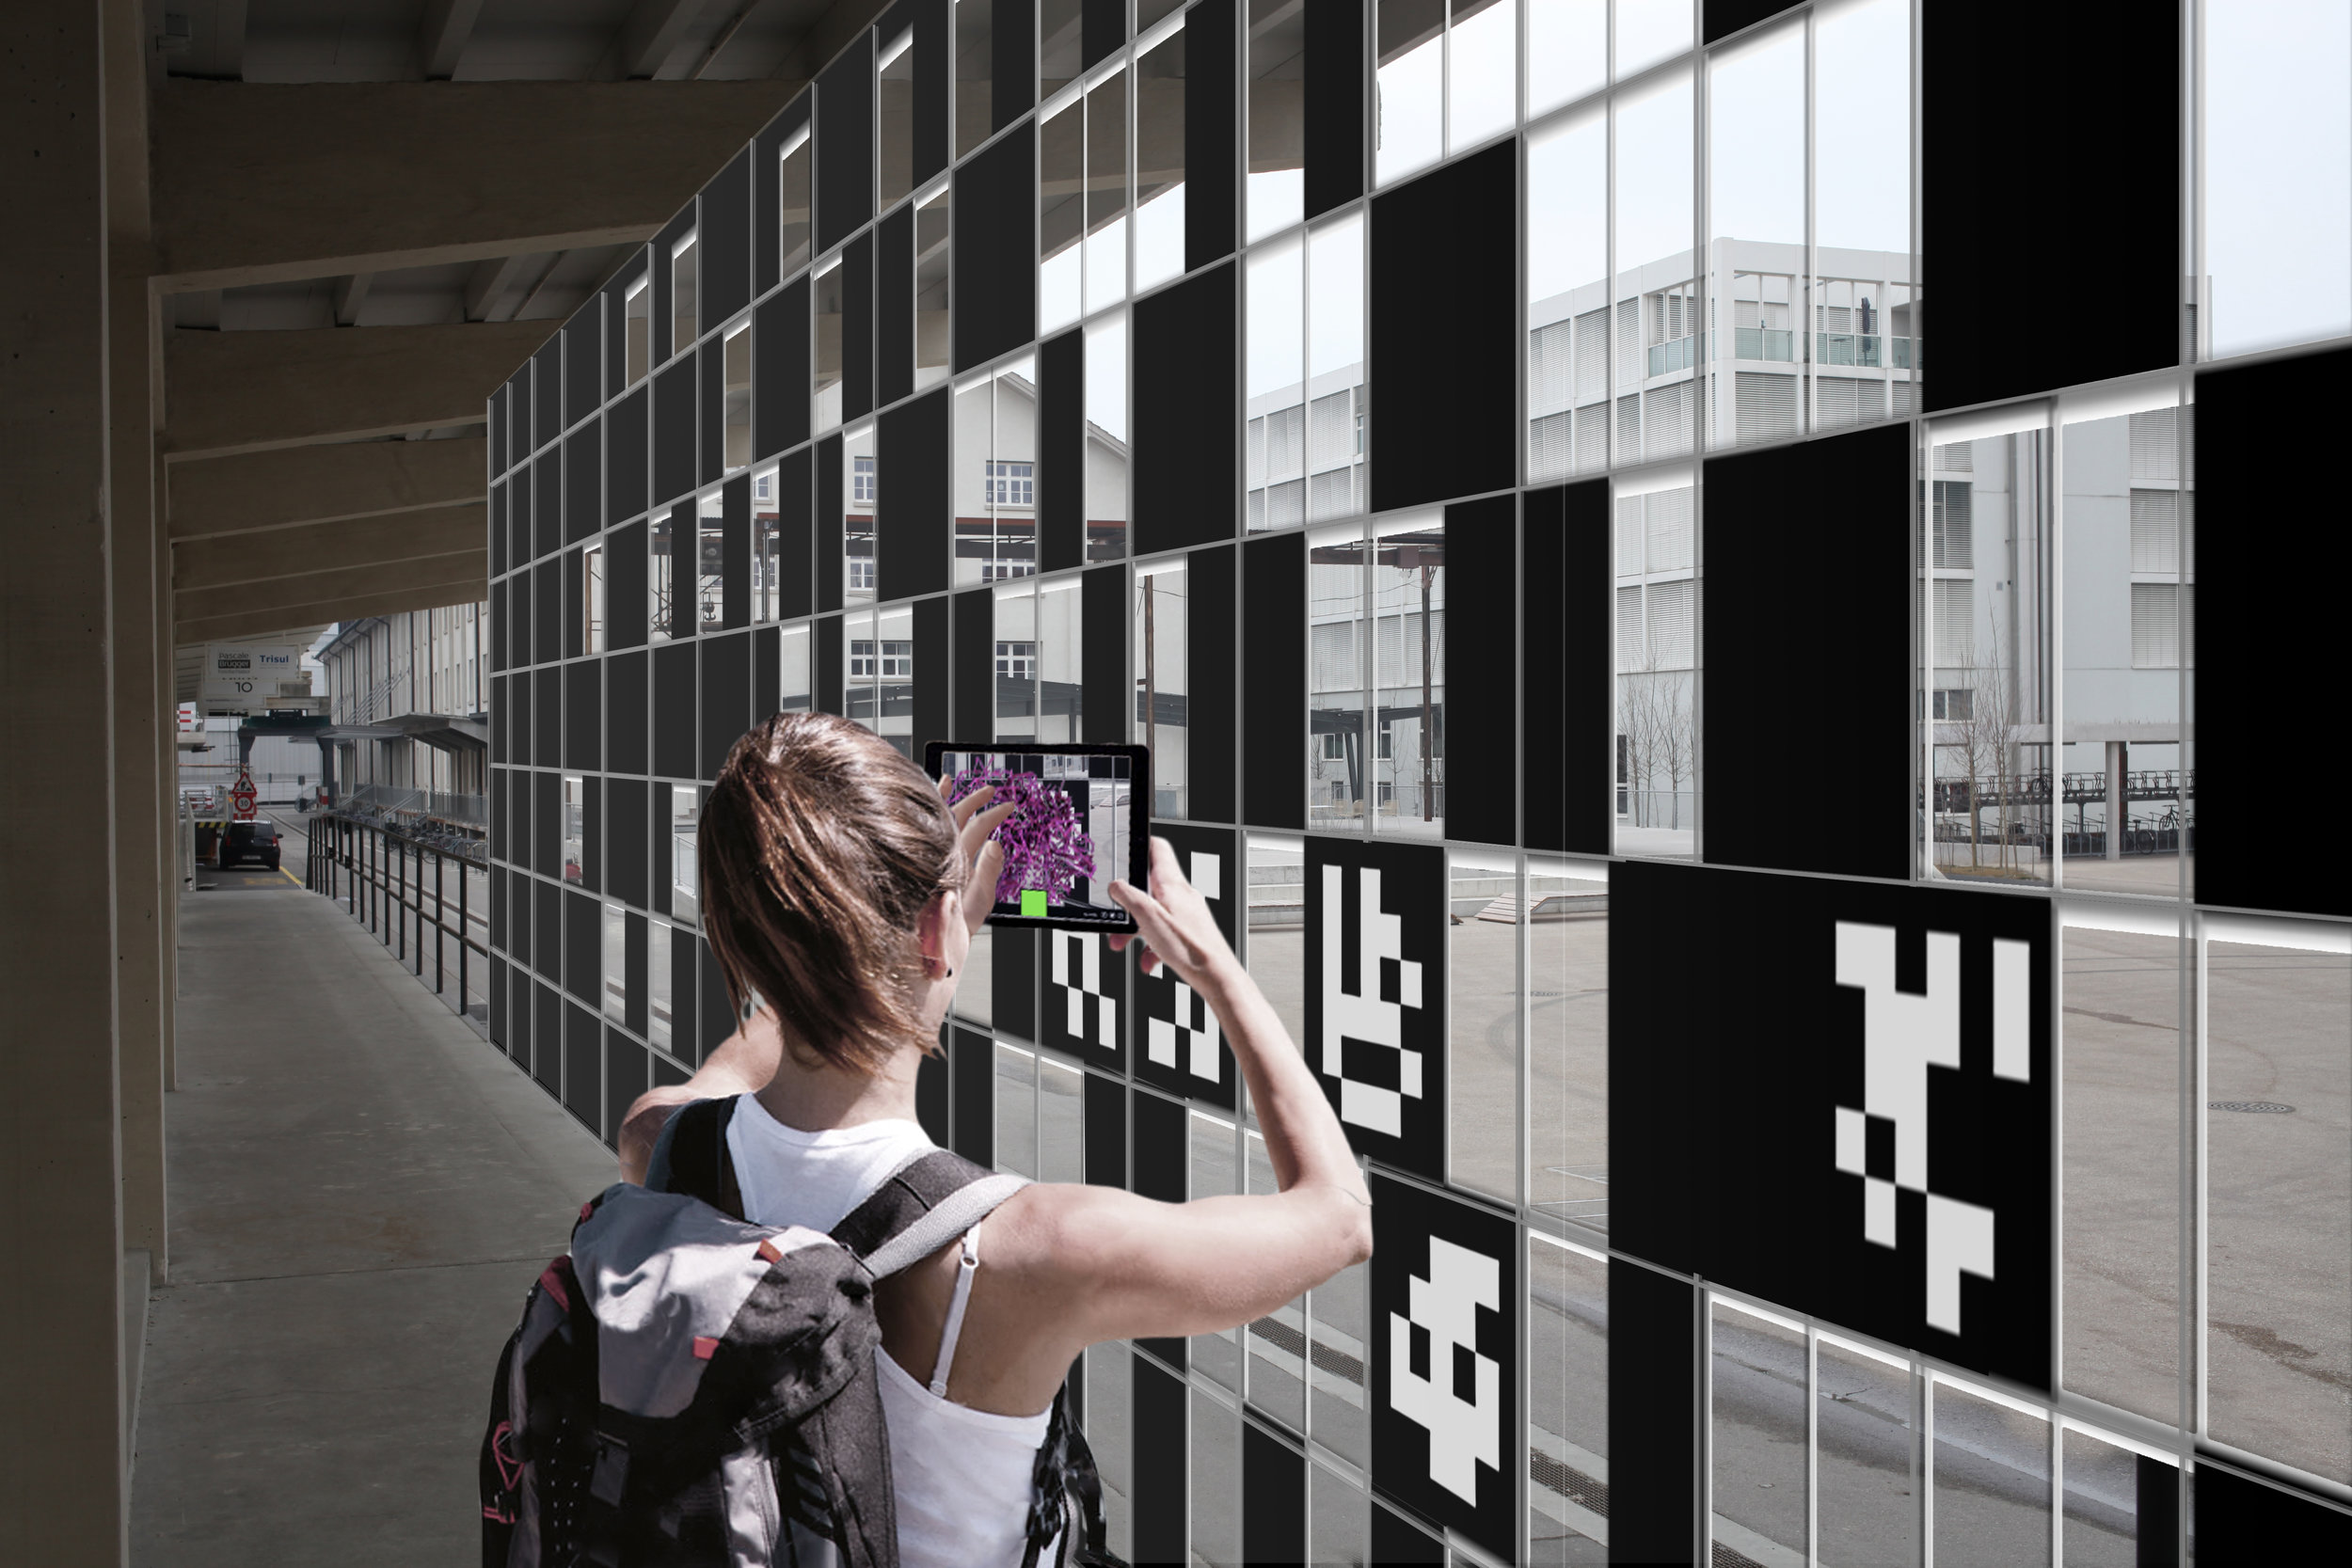 Behind the installation visitors can interact with small-scale fiducial markers to explore a gallery of AR content